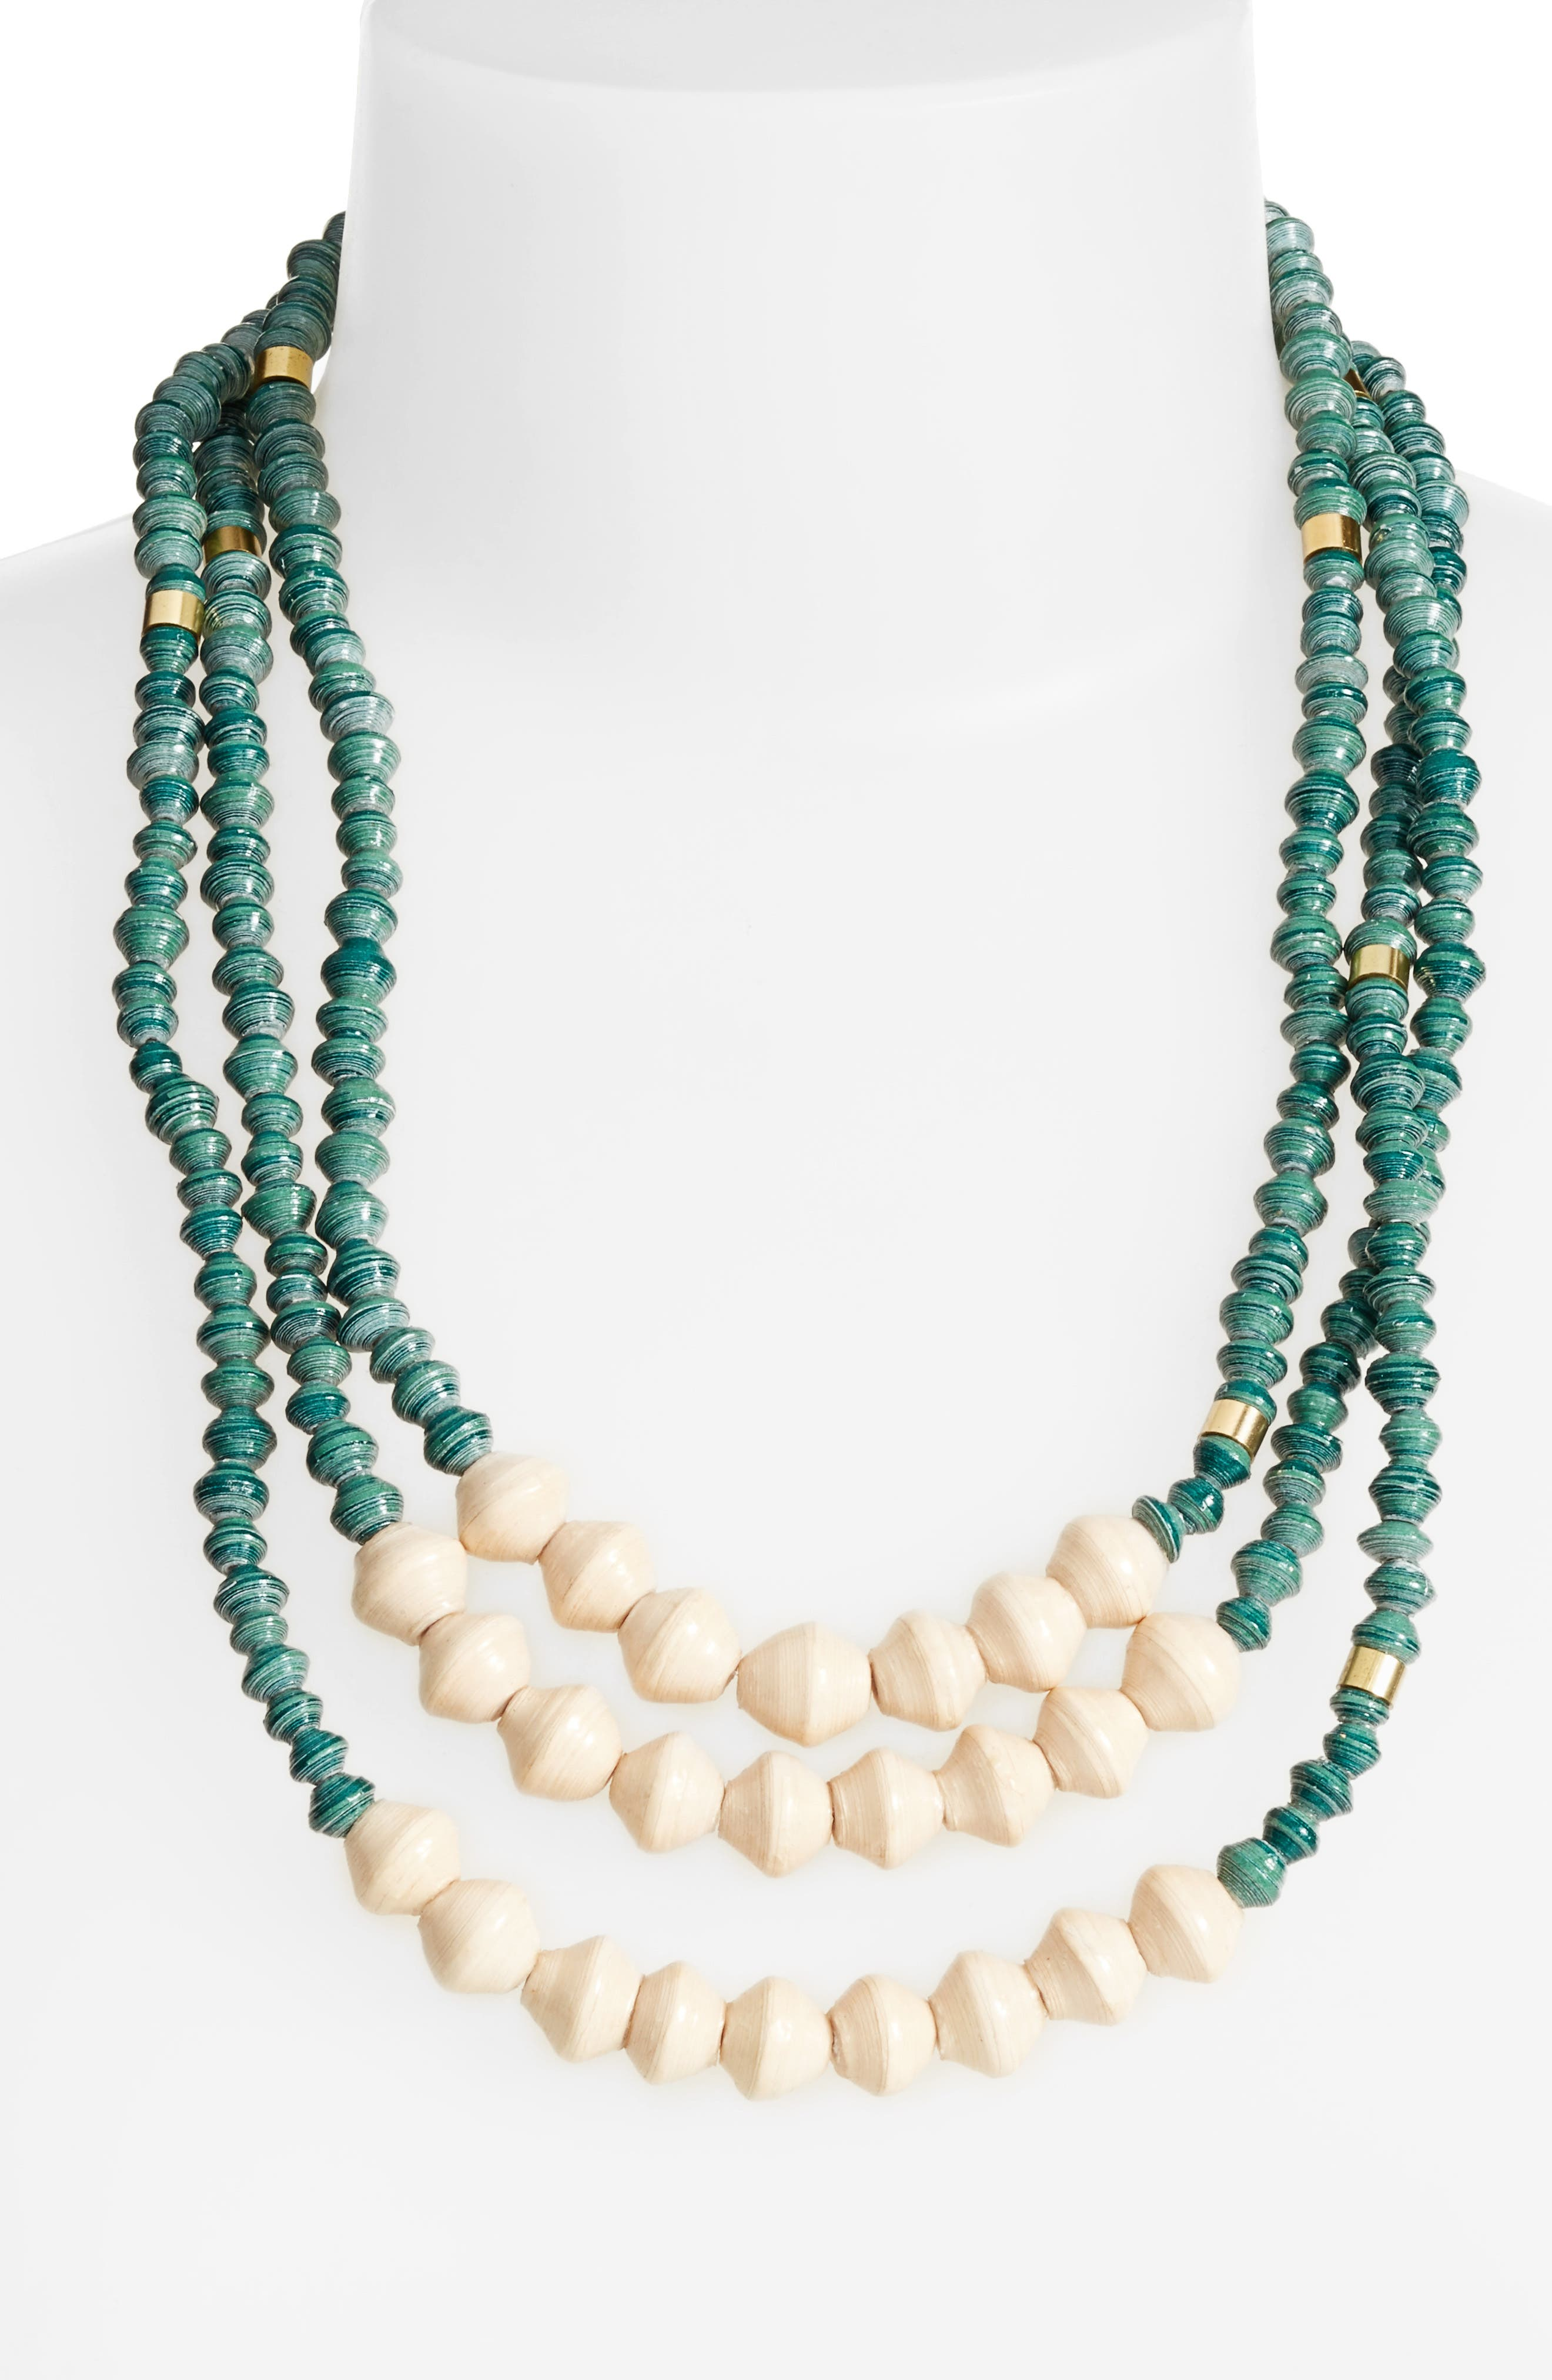 31 Bits Emery Paper Bead Necklace